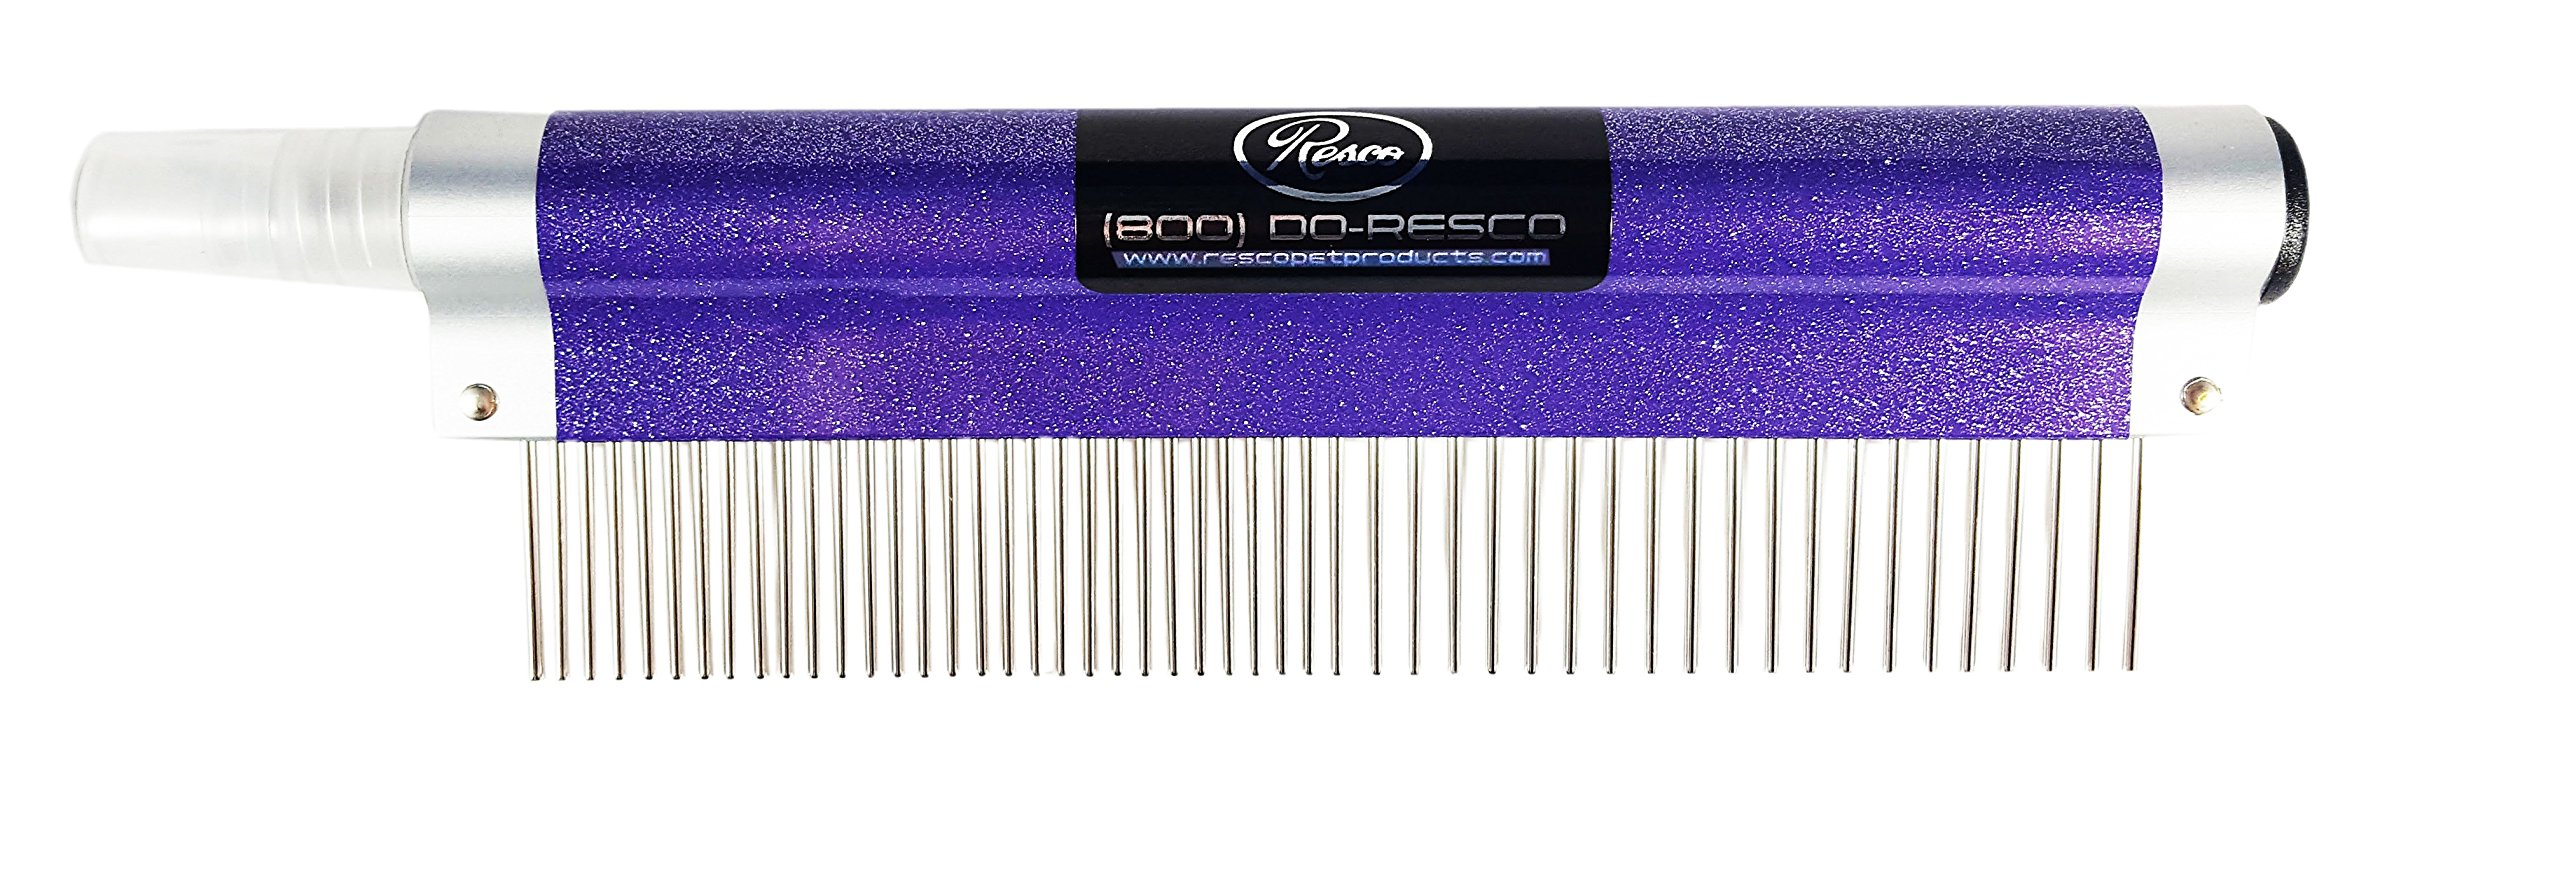 Resco USA-Made Spritzer Comb for Pets, 1'' Combination, Sparkle Purple, Includes Detangler and Finishing Spray